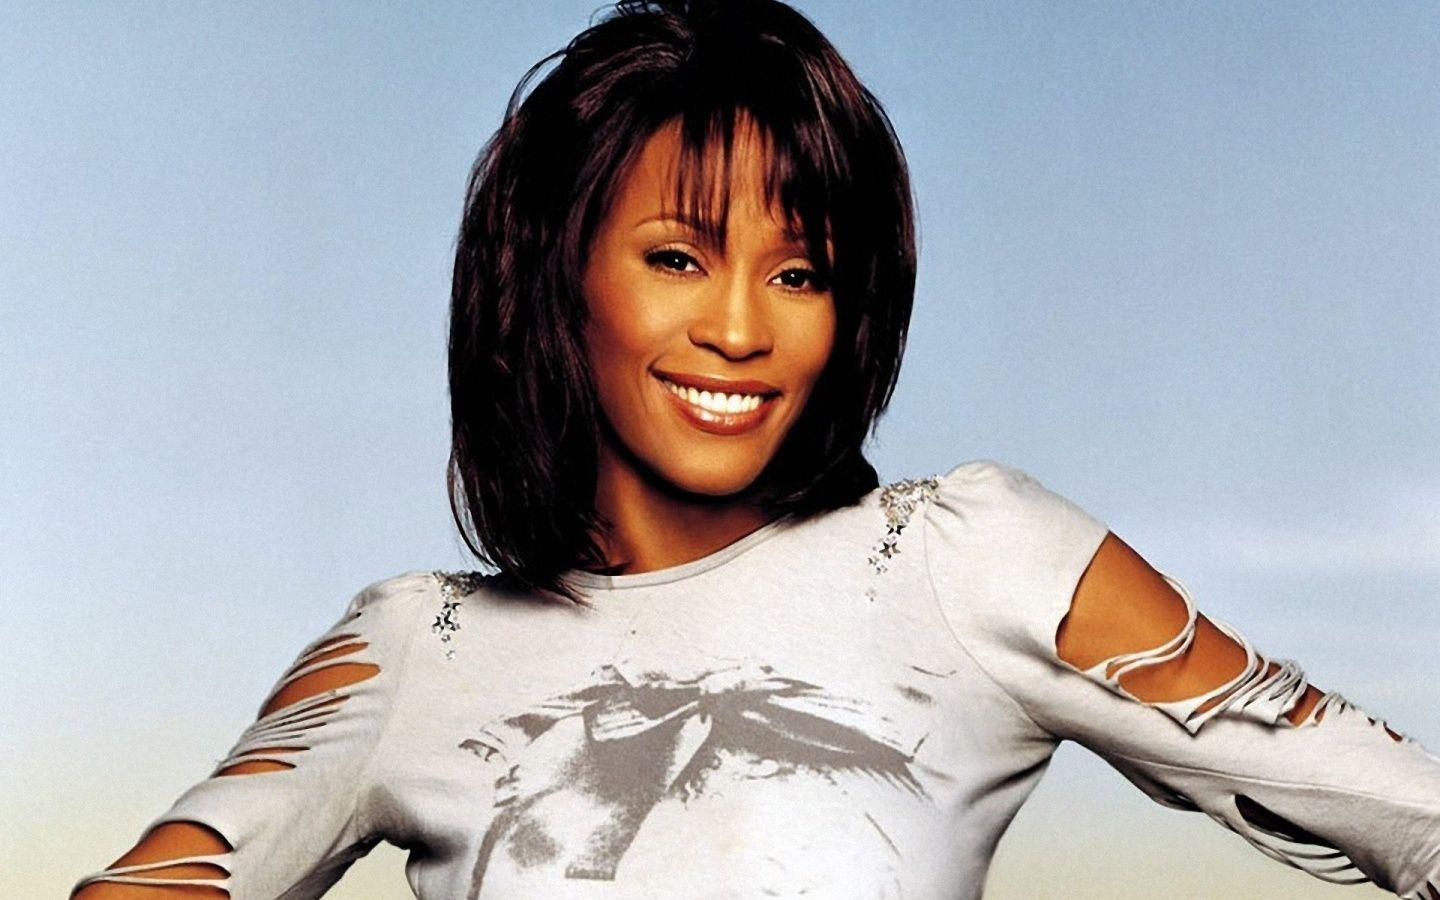 1440x900 Whitney Houston Homage desktop PC and Mac wallpapers